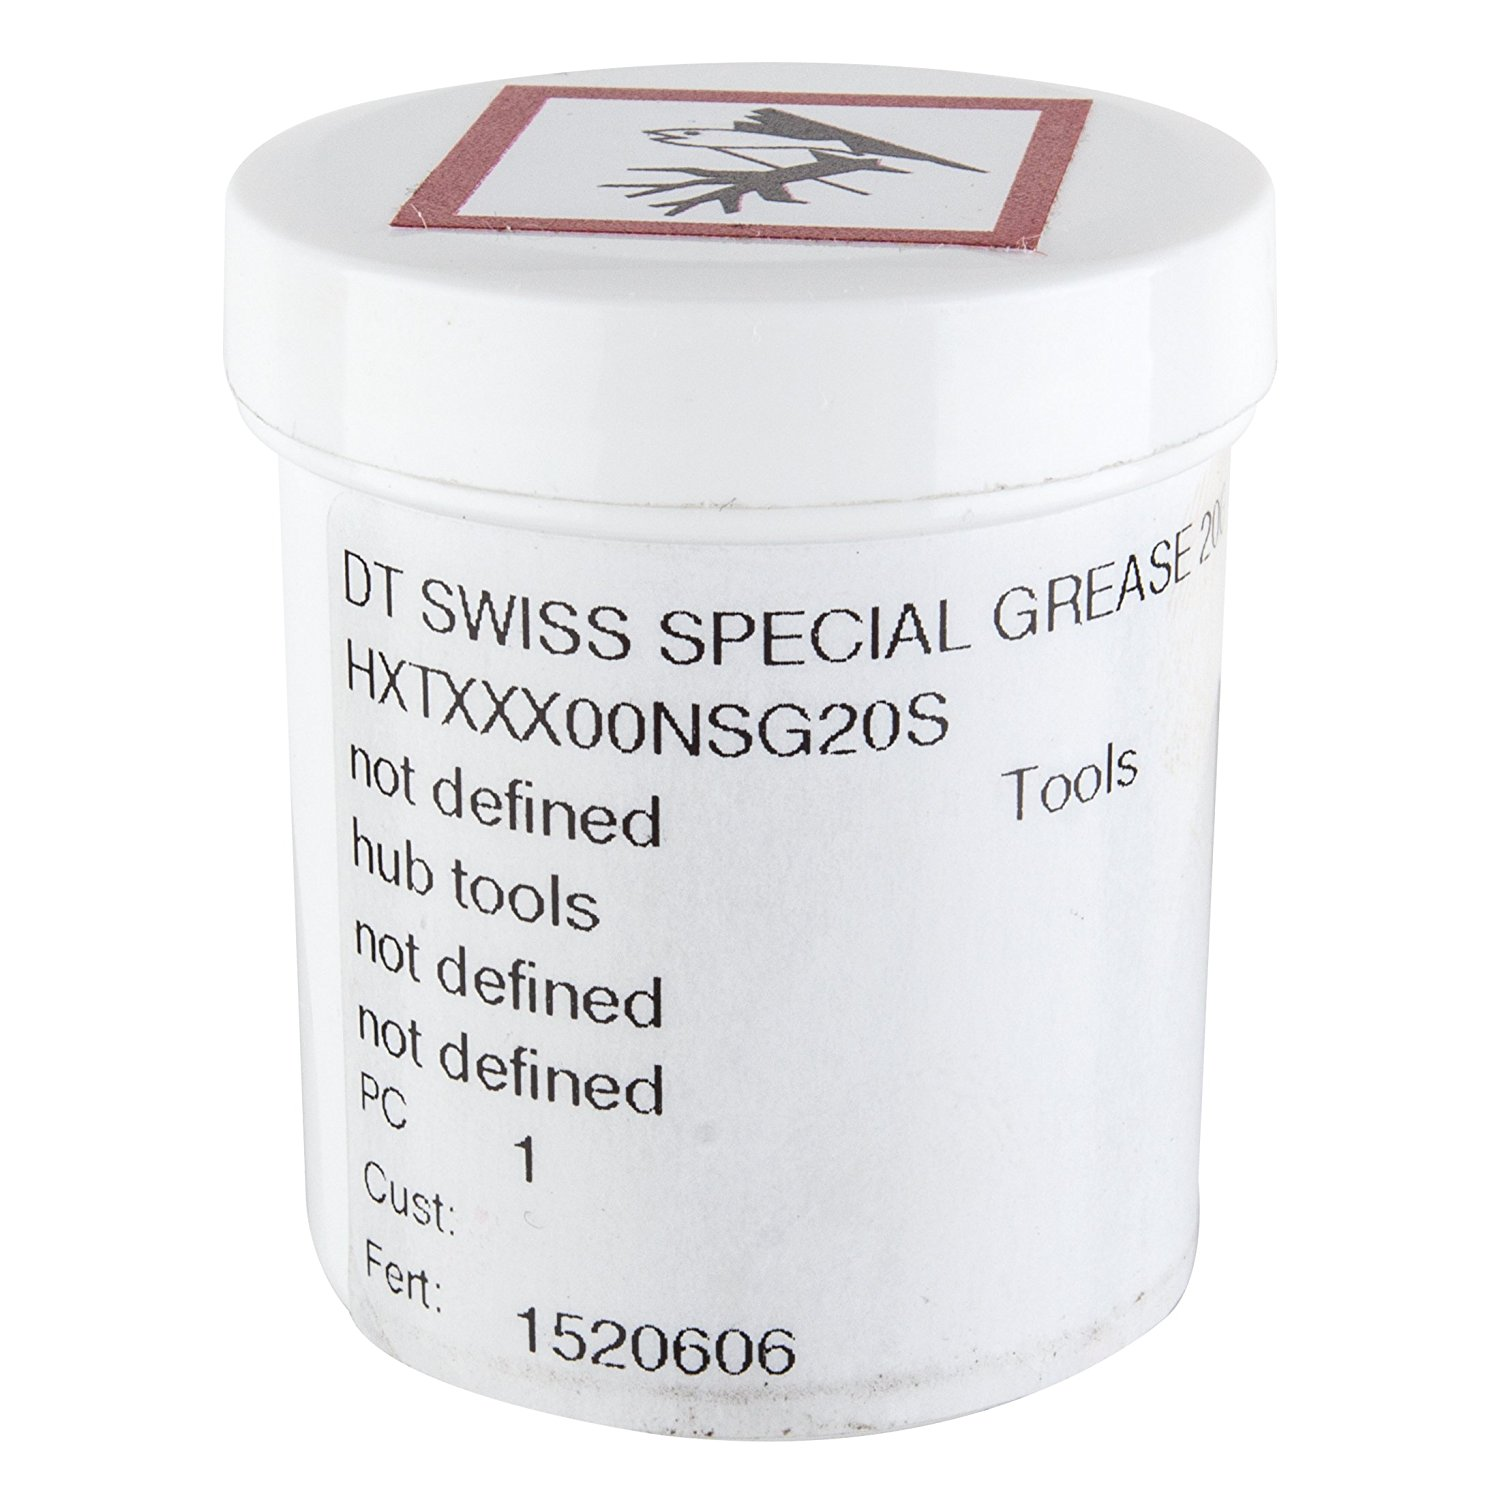 Lube DT Grease Special 20G Tub, DT SWISS grease for Star ratchets on dt-Swiss/huge hubs By DT Swiss